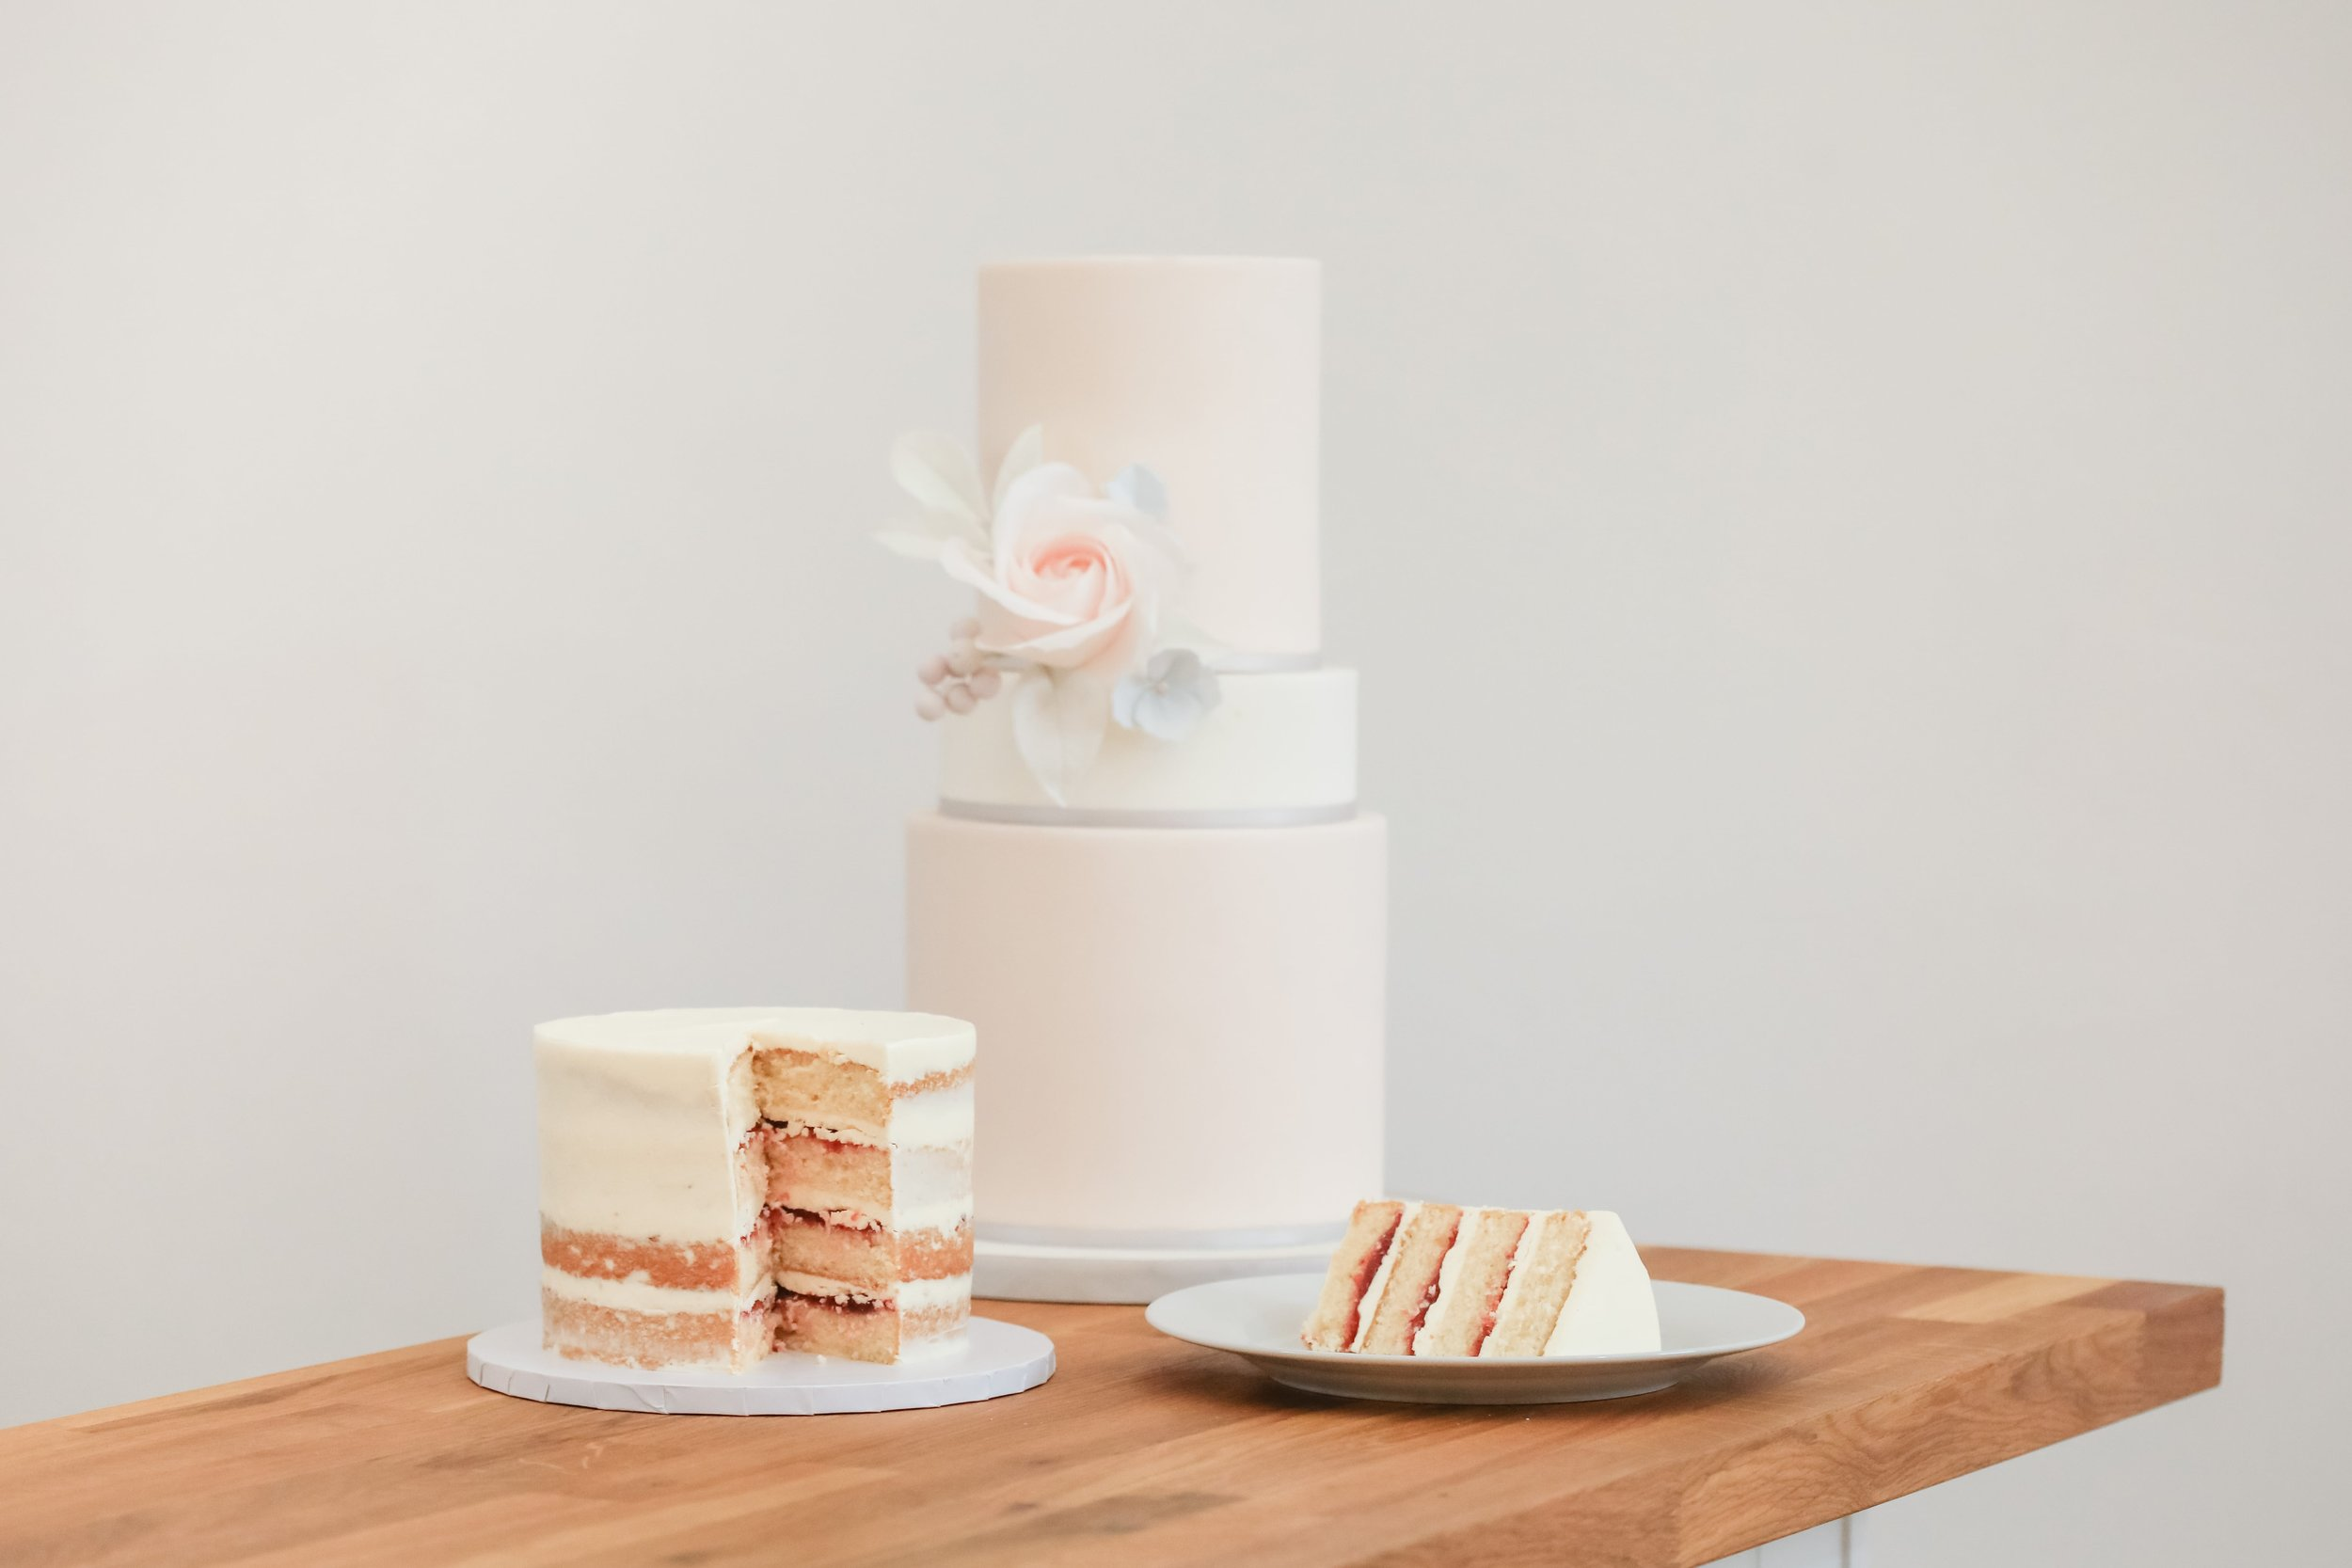 Iced wedding cake or naked wedding cake? Cake by Meadowsweet Cakes, Photography by Becky Harley Photography